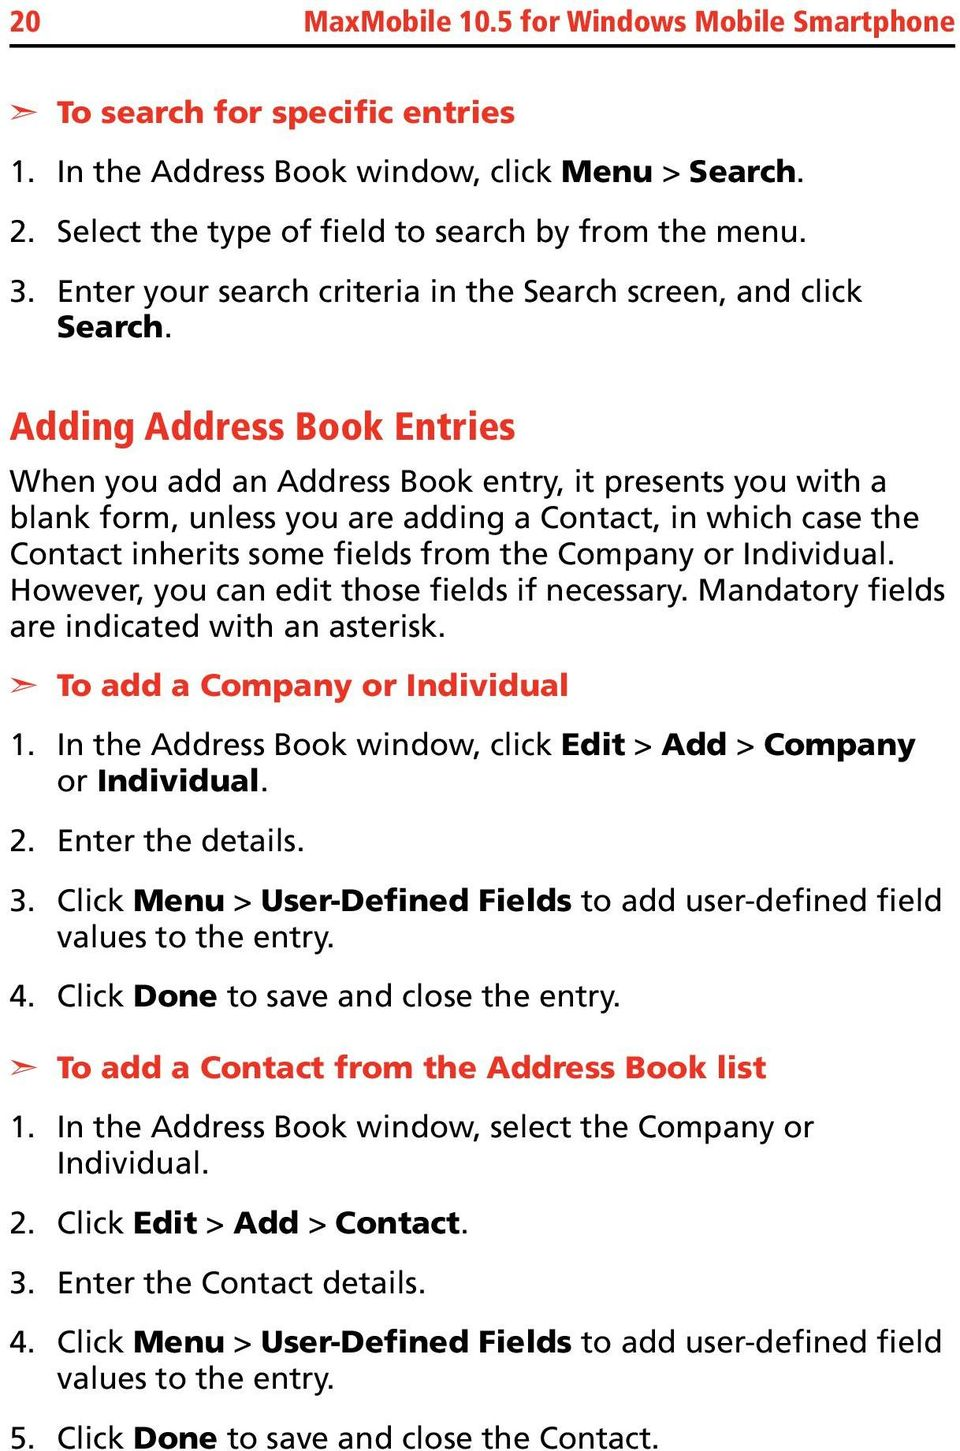 Adding Address Book Entries When you add an Address Book entry, it presents you with a blank form, unless you are adding a Contact, in which case the Contact inherits some fields from the Company or